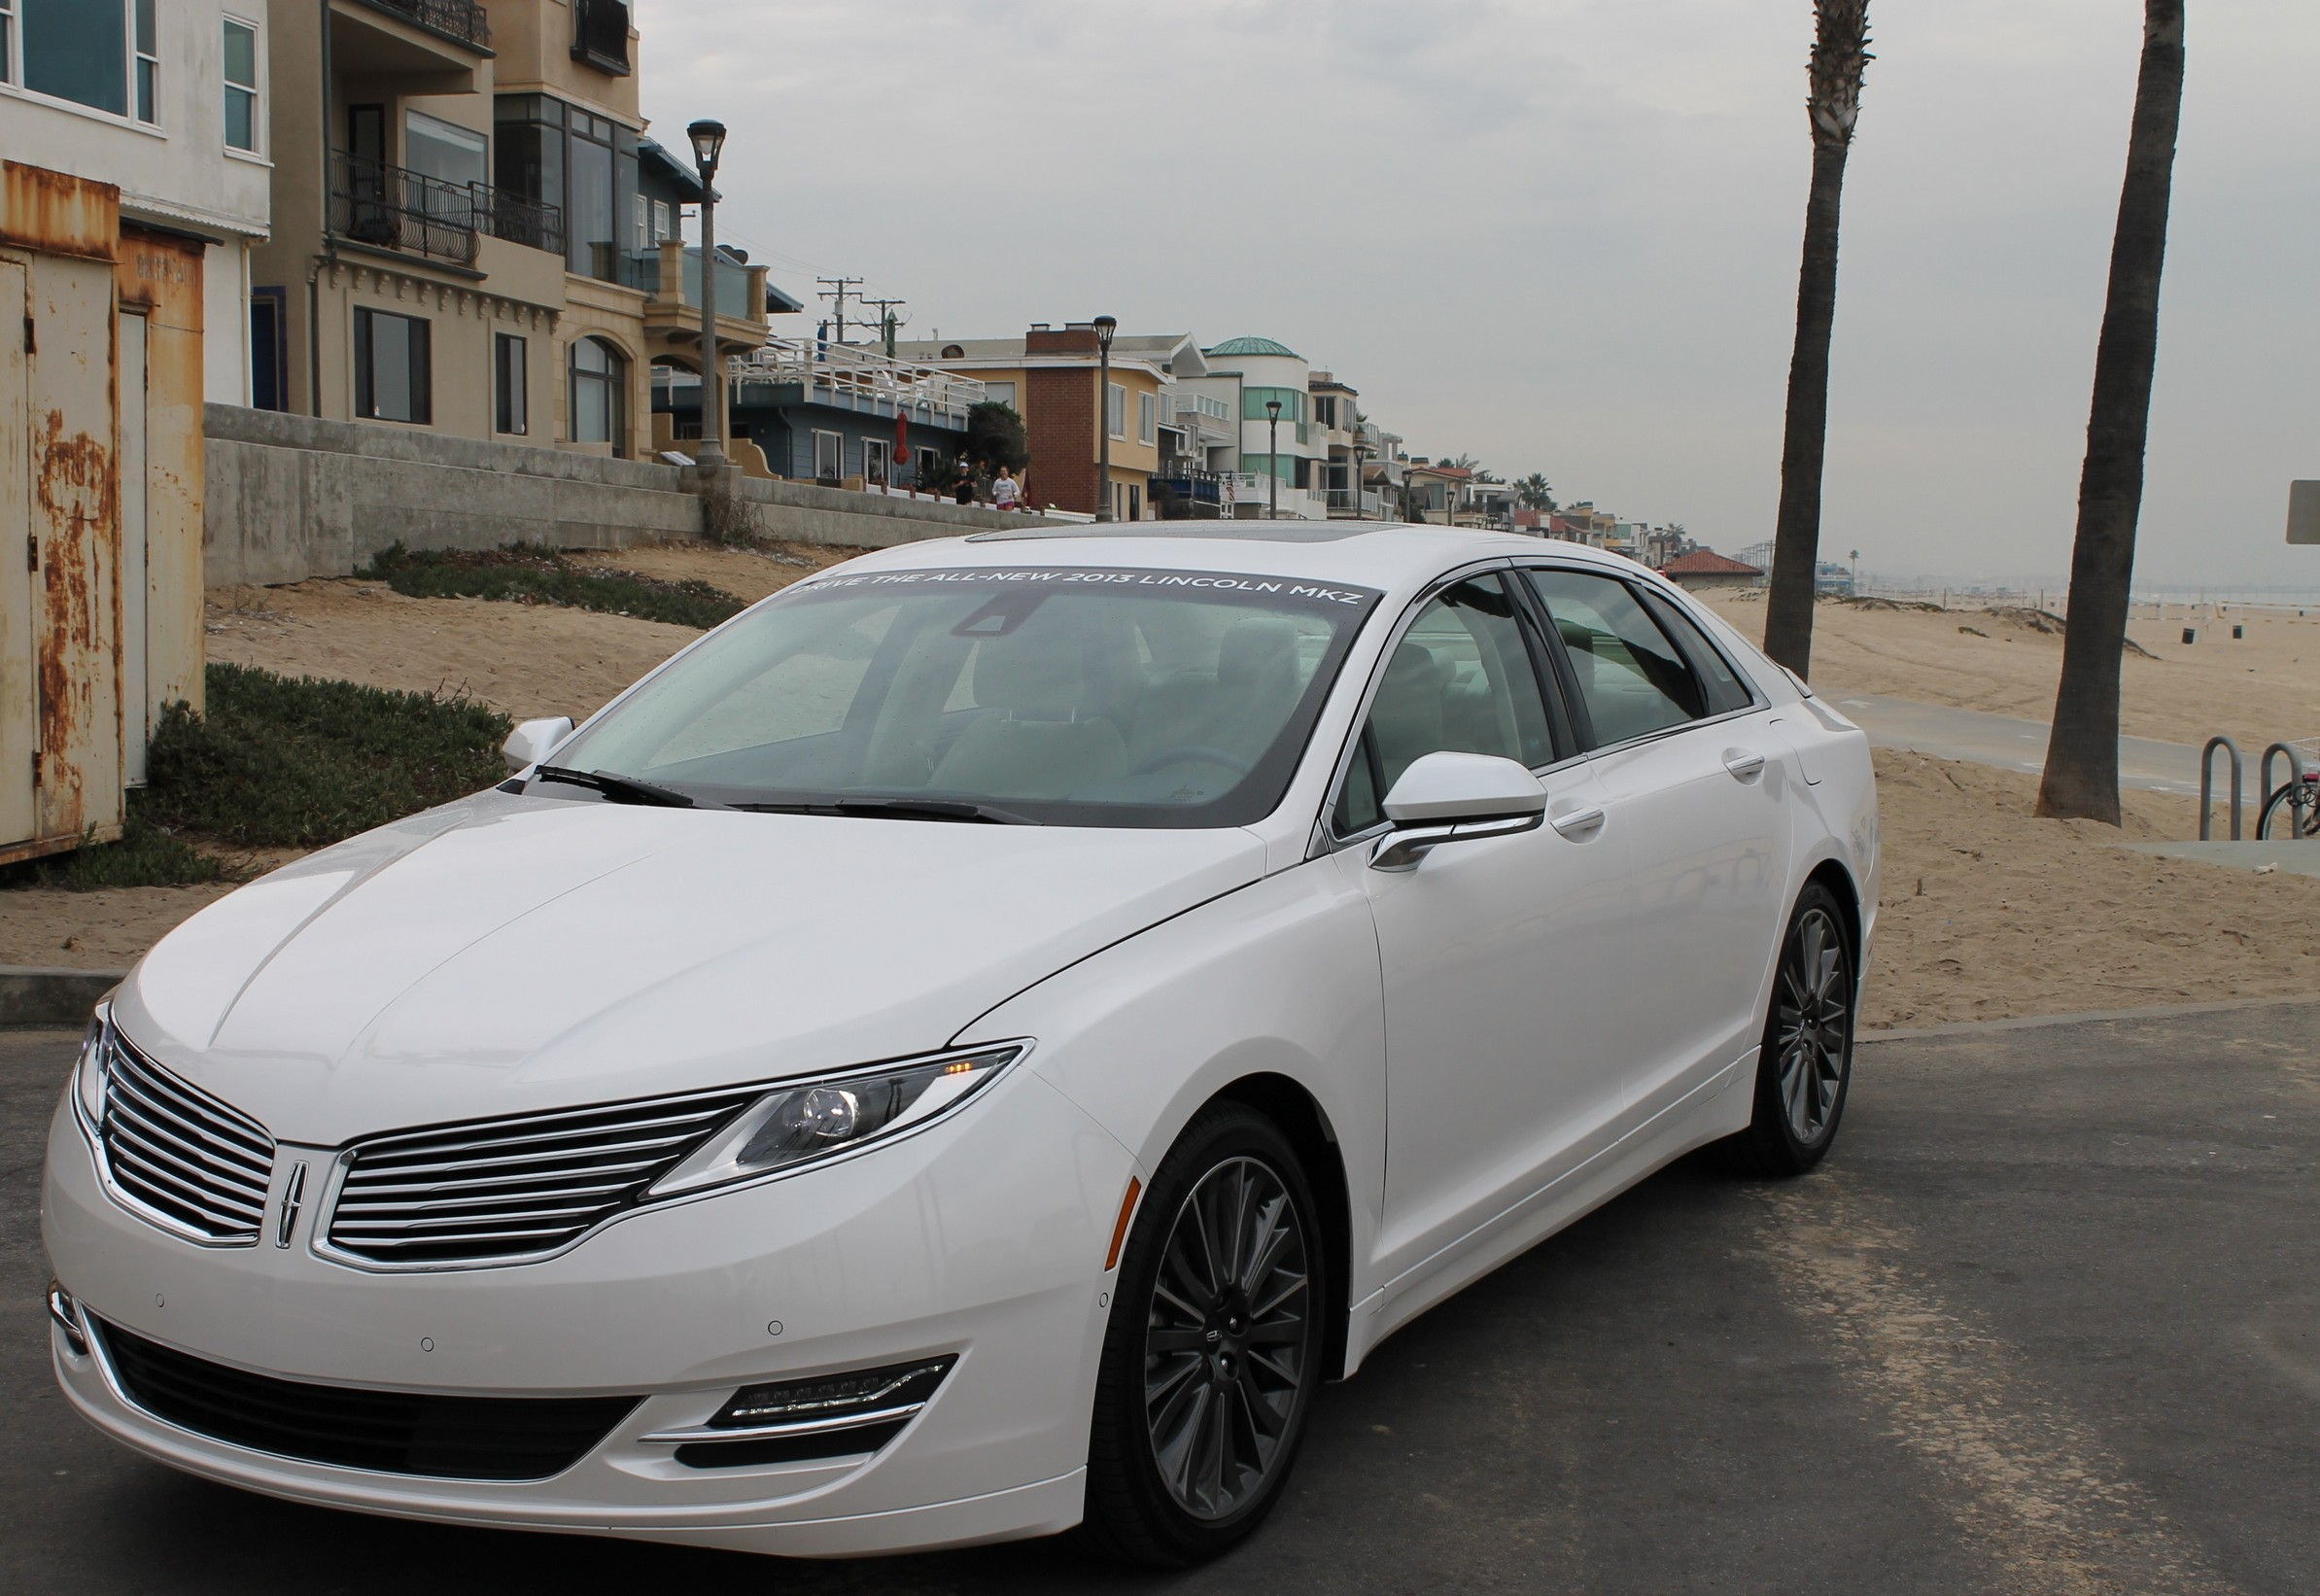 2013 Lincoln Mkz #10